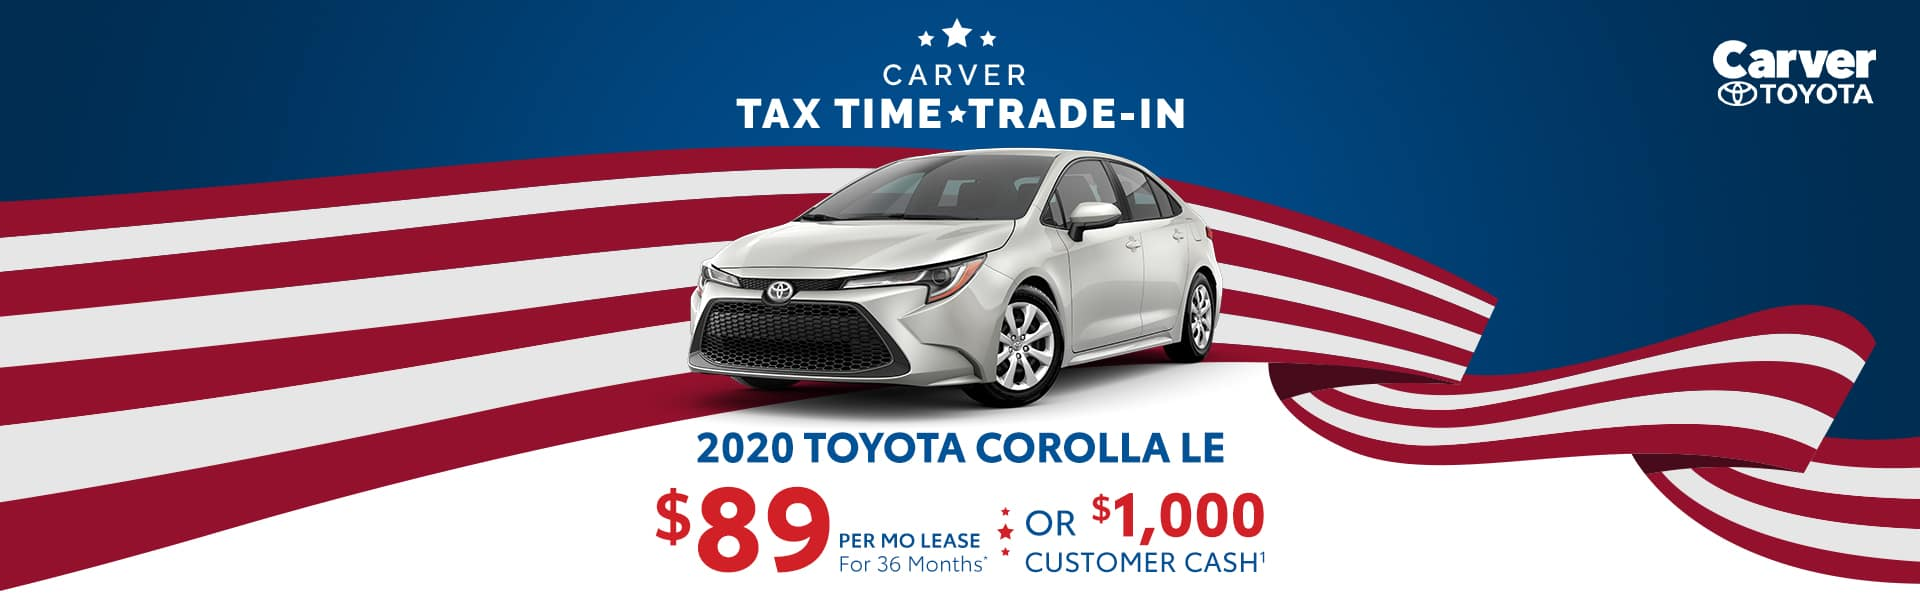 Lease a 2020 Corolla for $89 a month near Indianapolis, Indiana